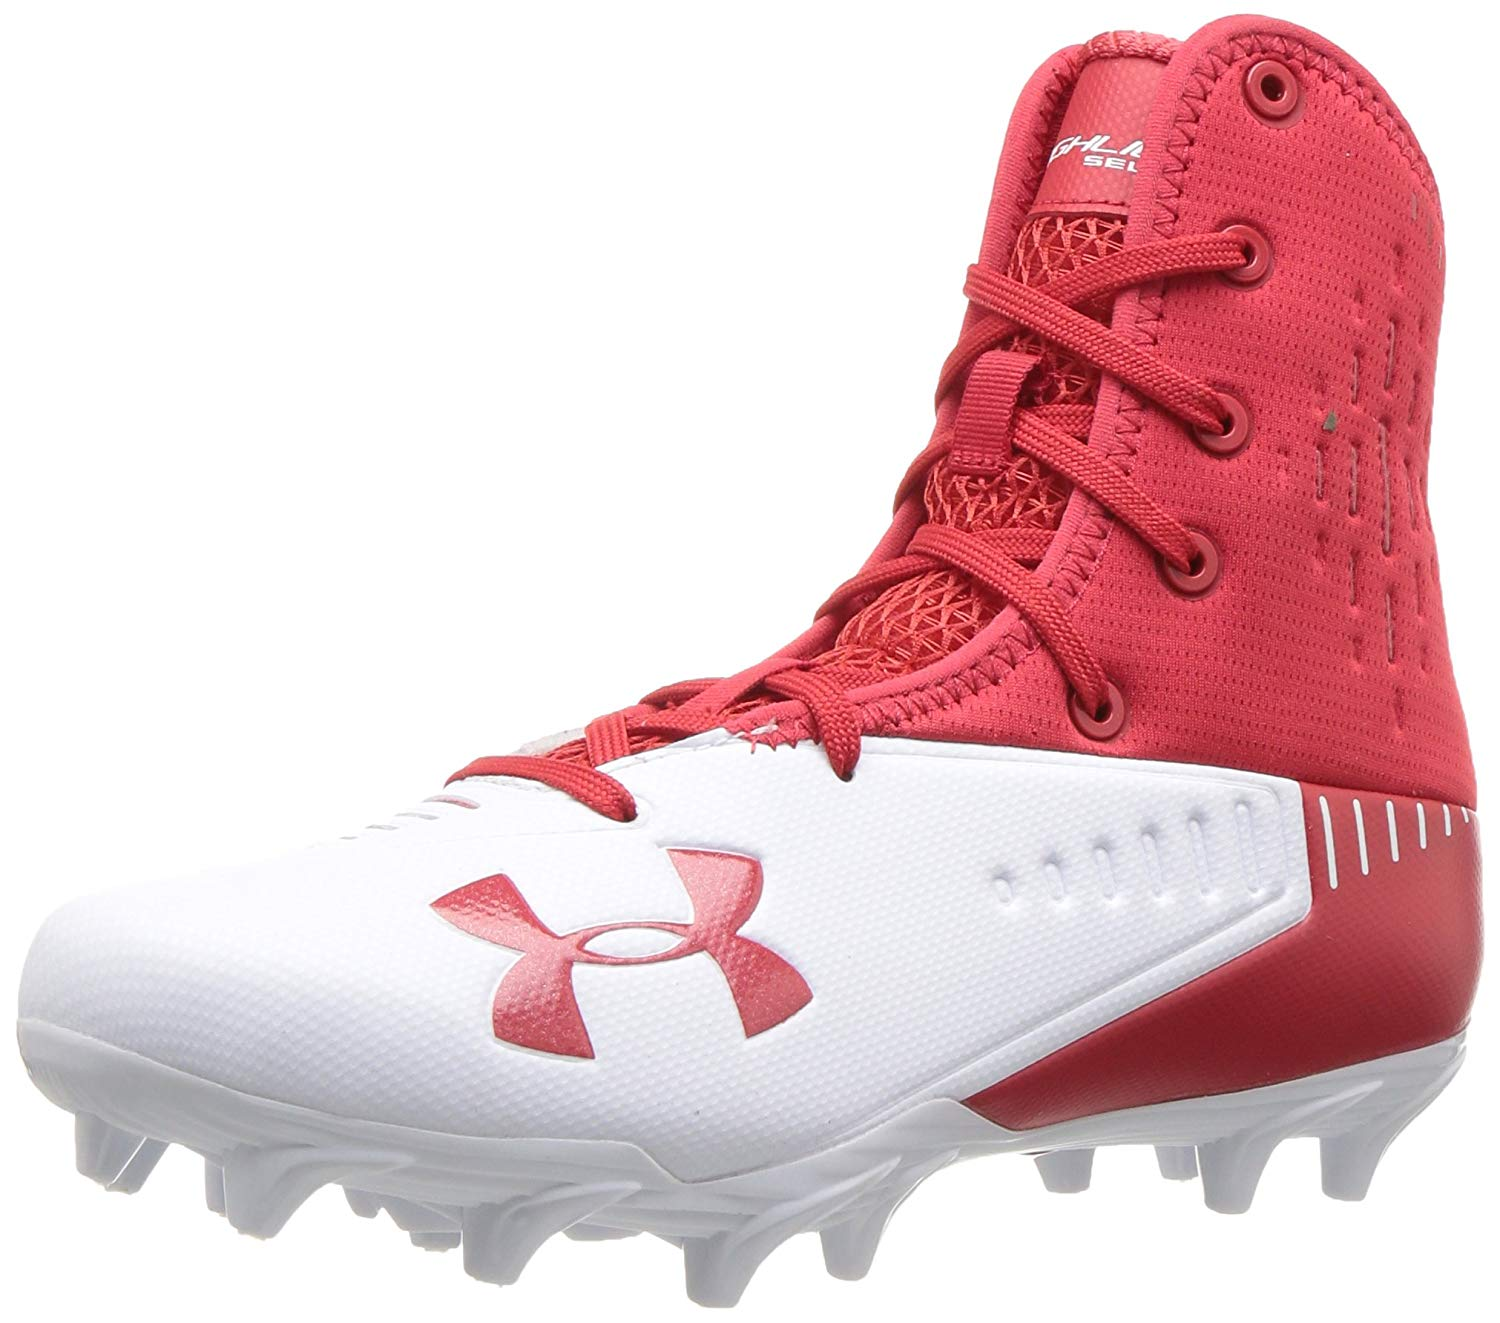 Under Armour Men Highlight MC Football Lacrosse Cleats Shoes 3000177 FREE SHIP